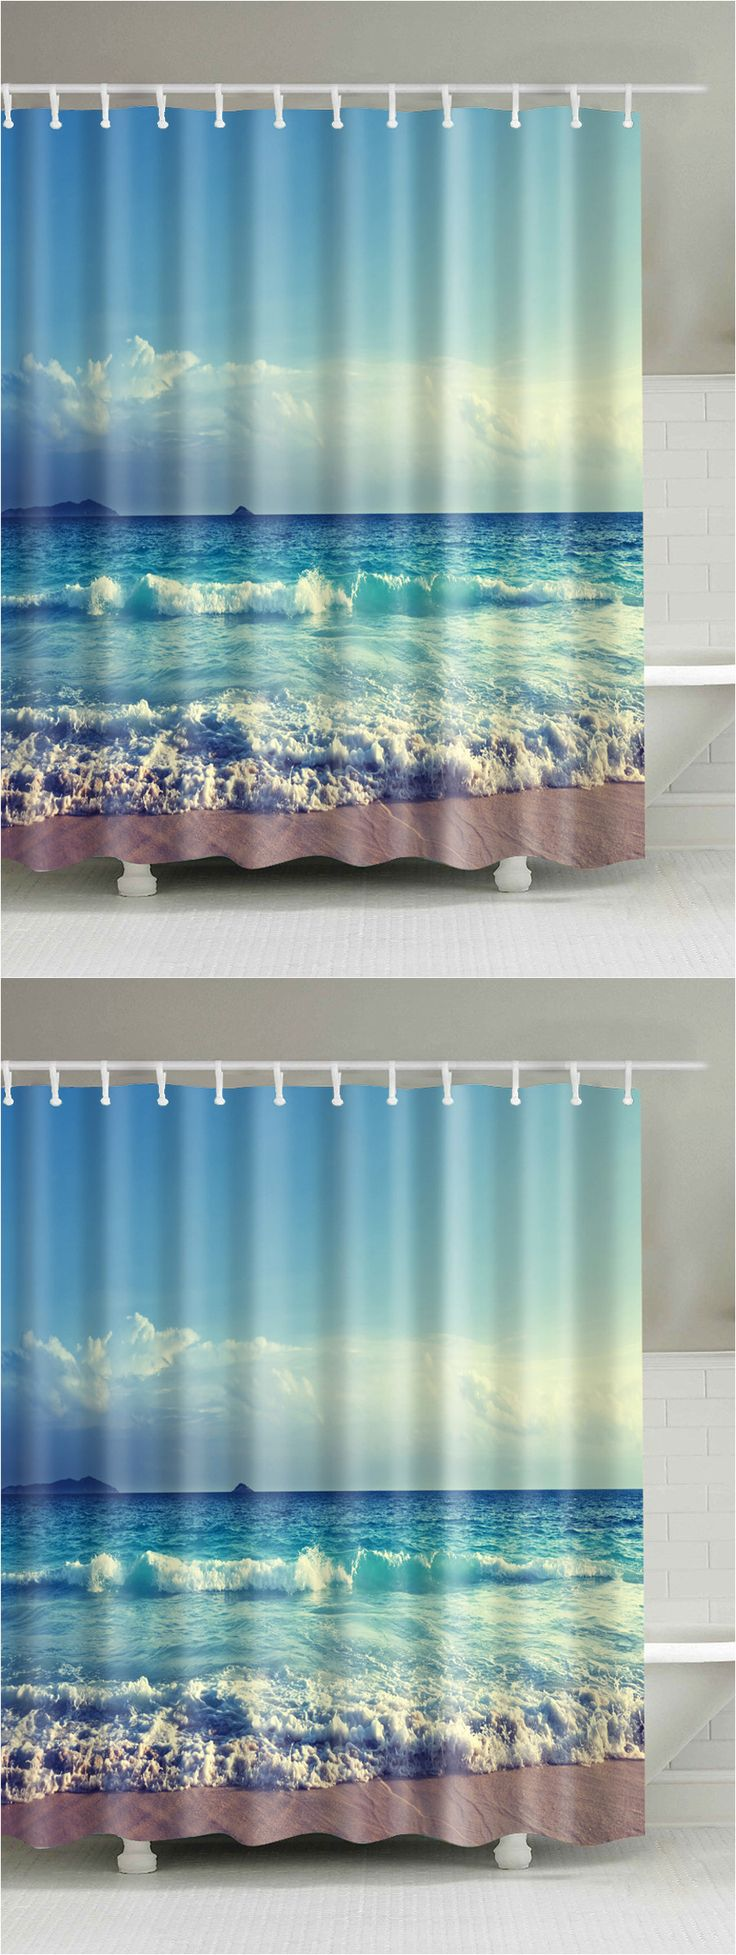 $17.25 Ocean Print Waterproof Mouldproof Shower Curtain